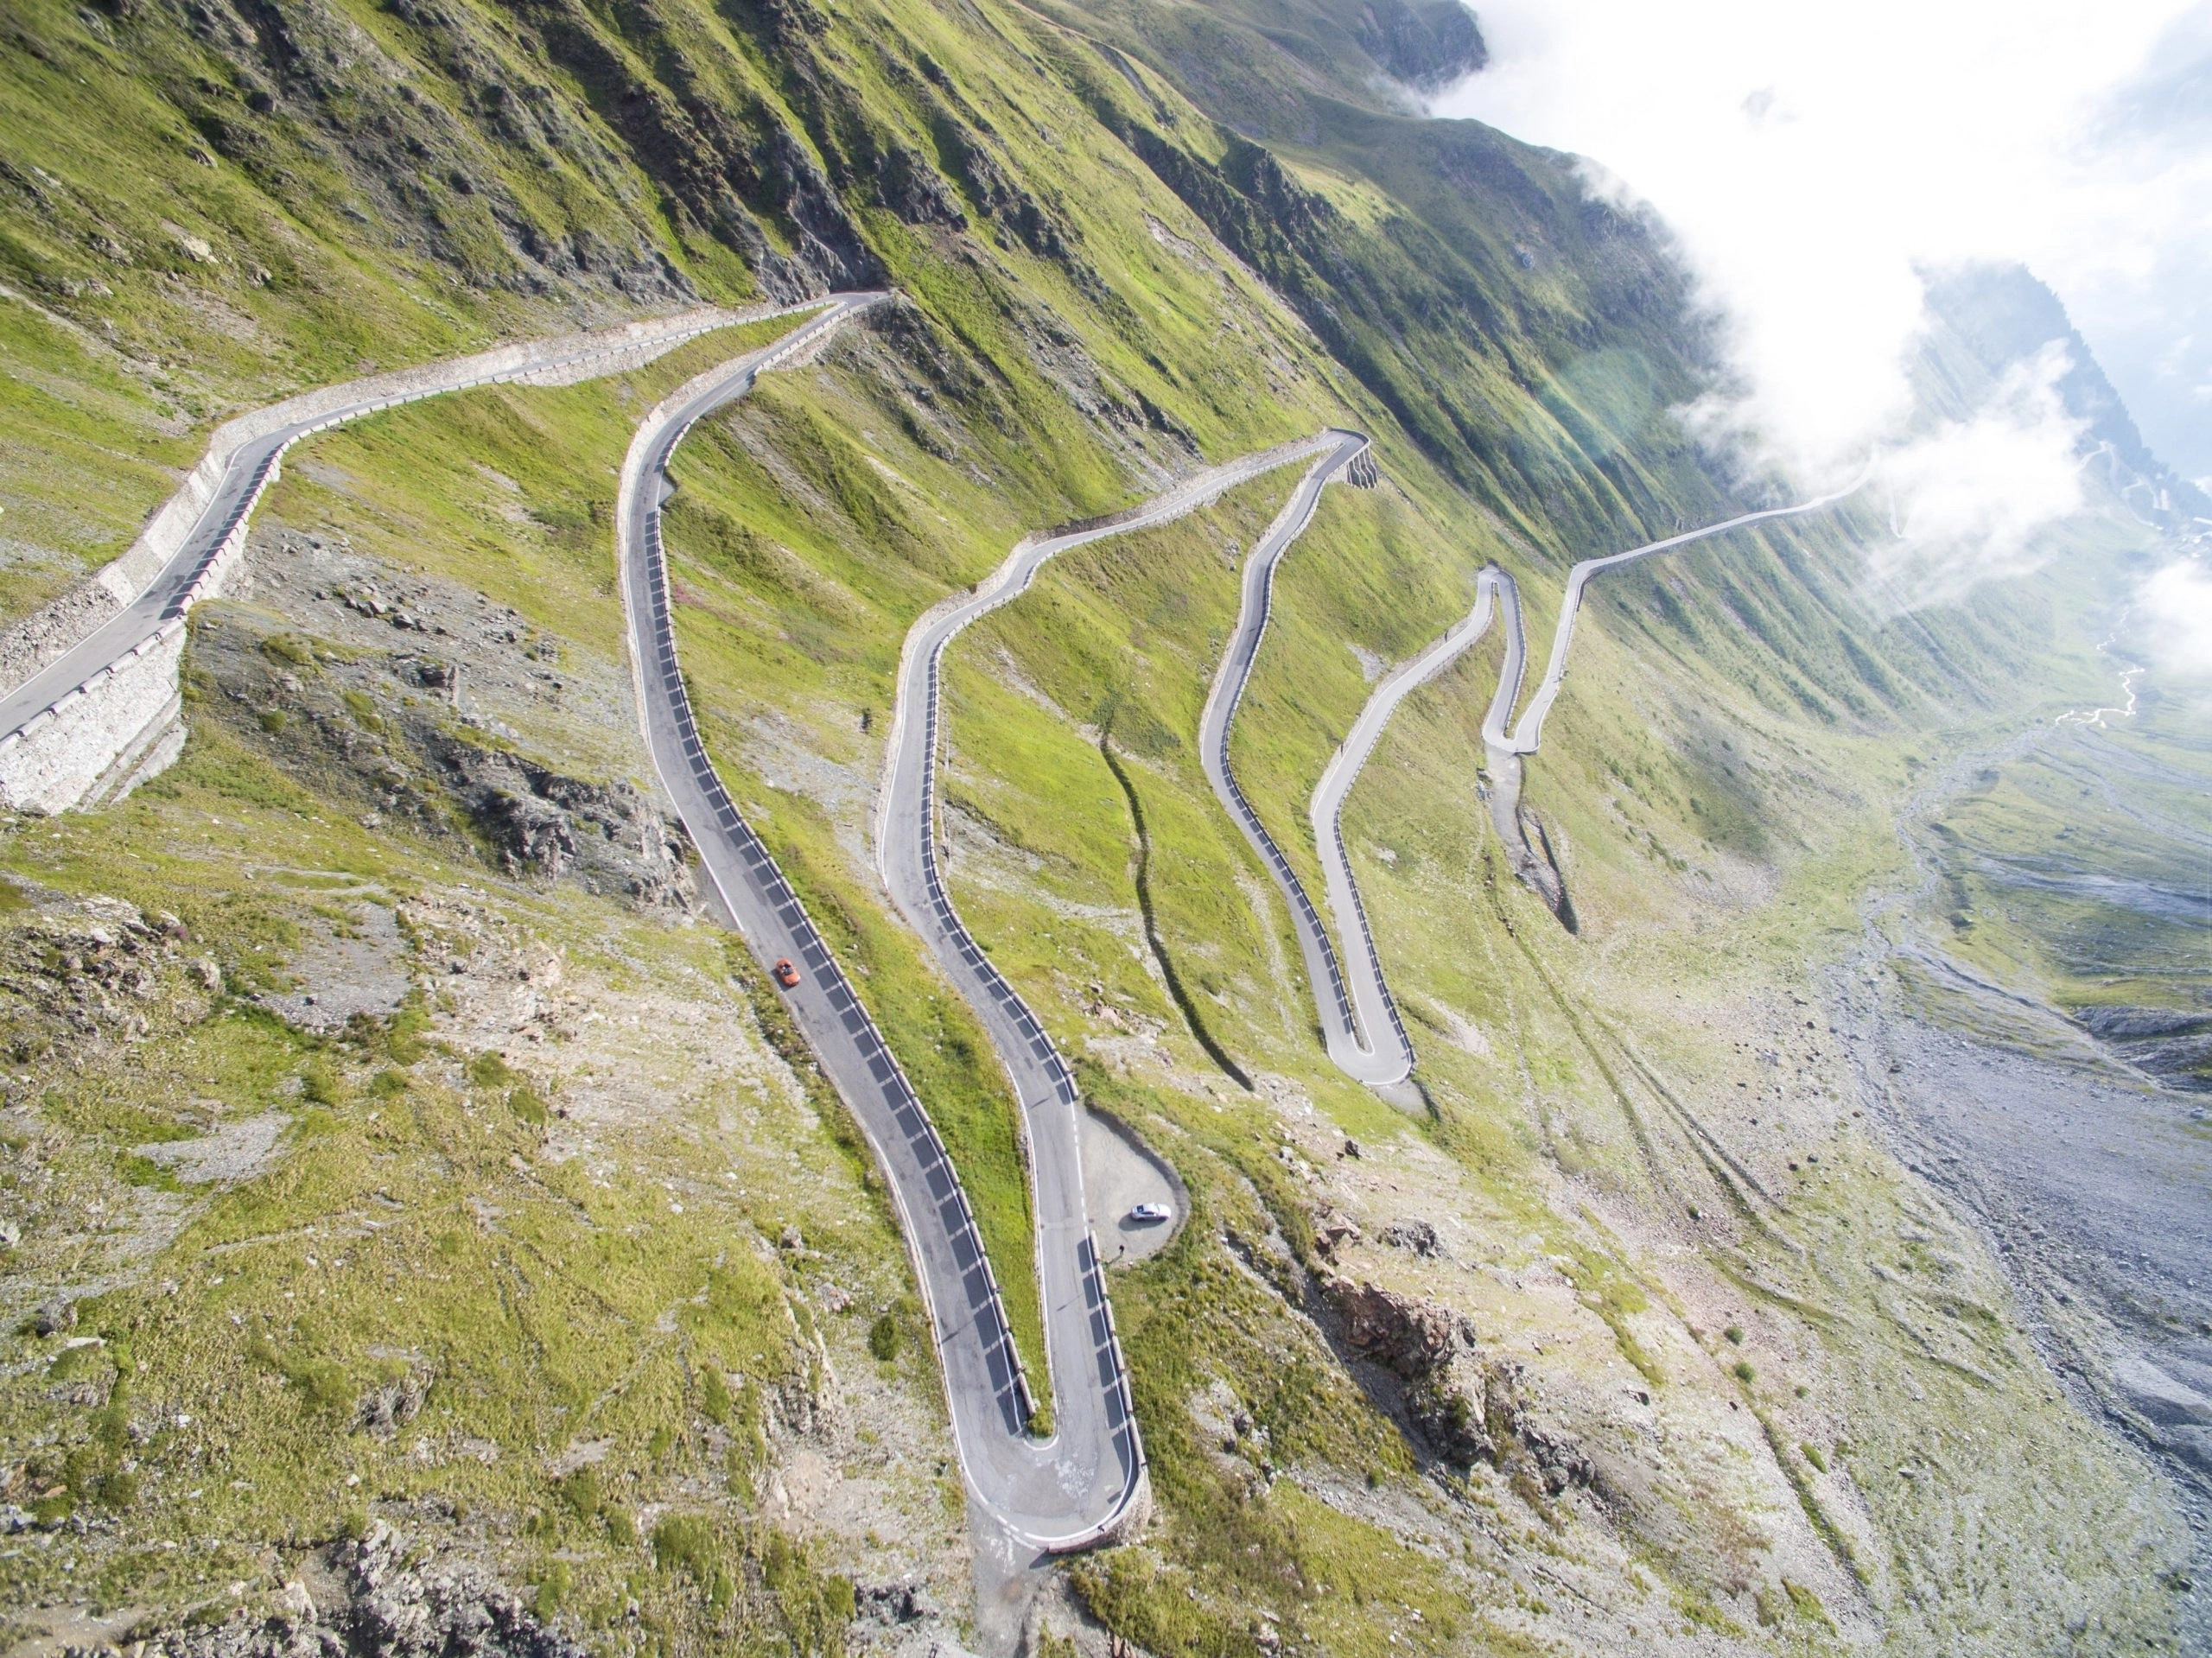 stelvio pass spectacular or spectacularly overrated